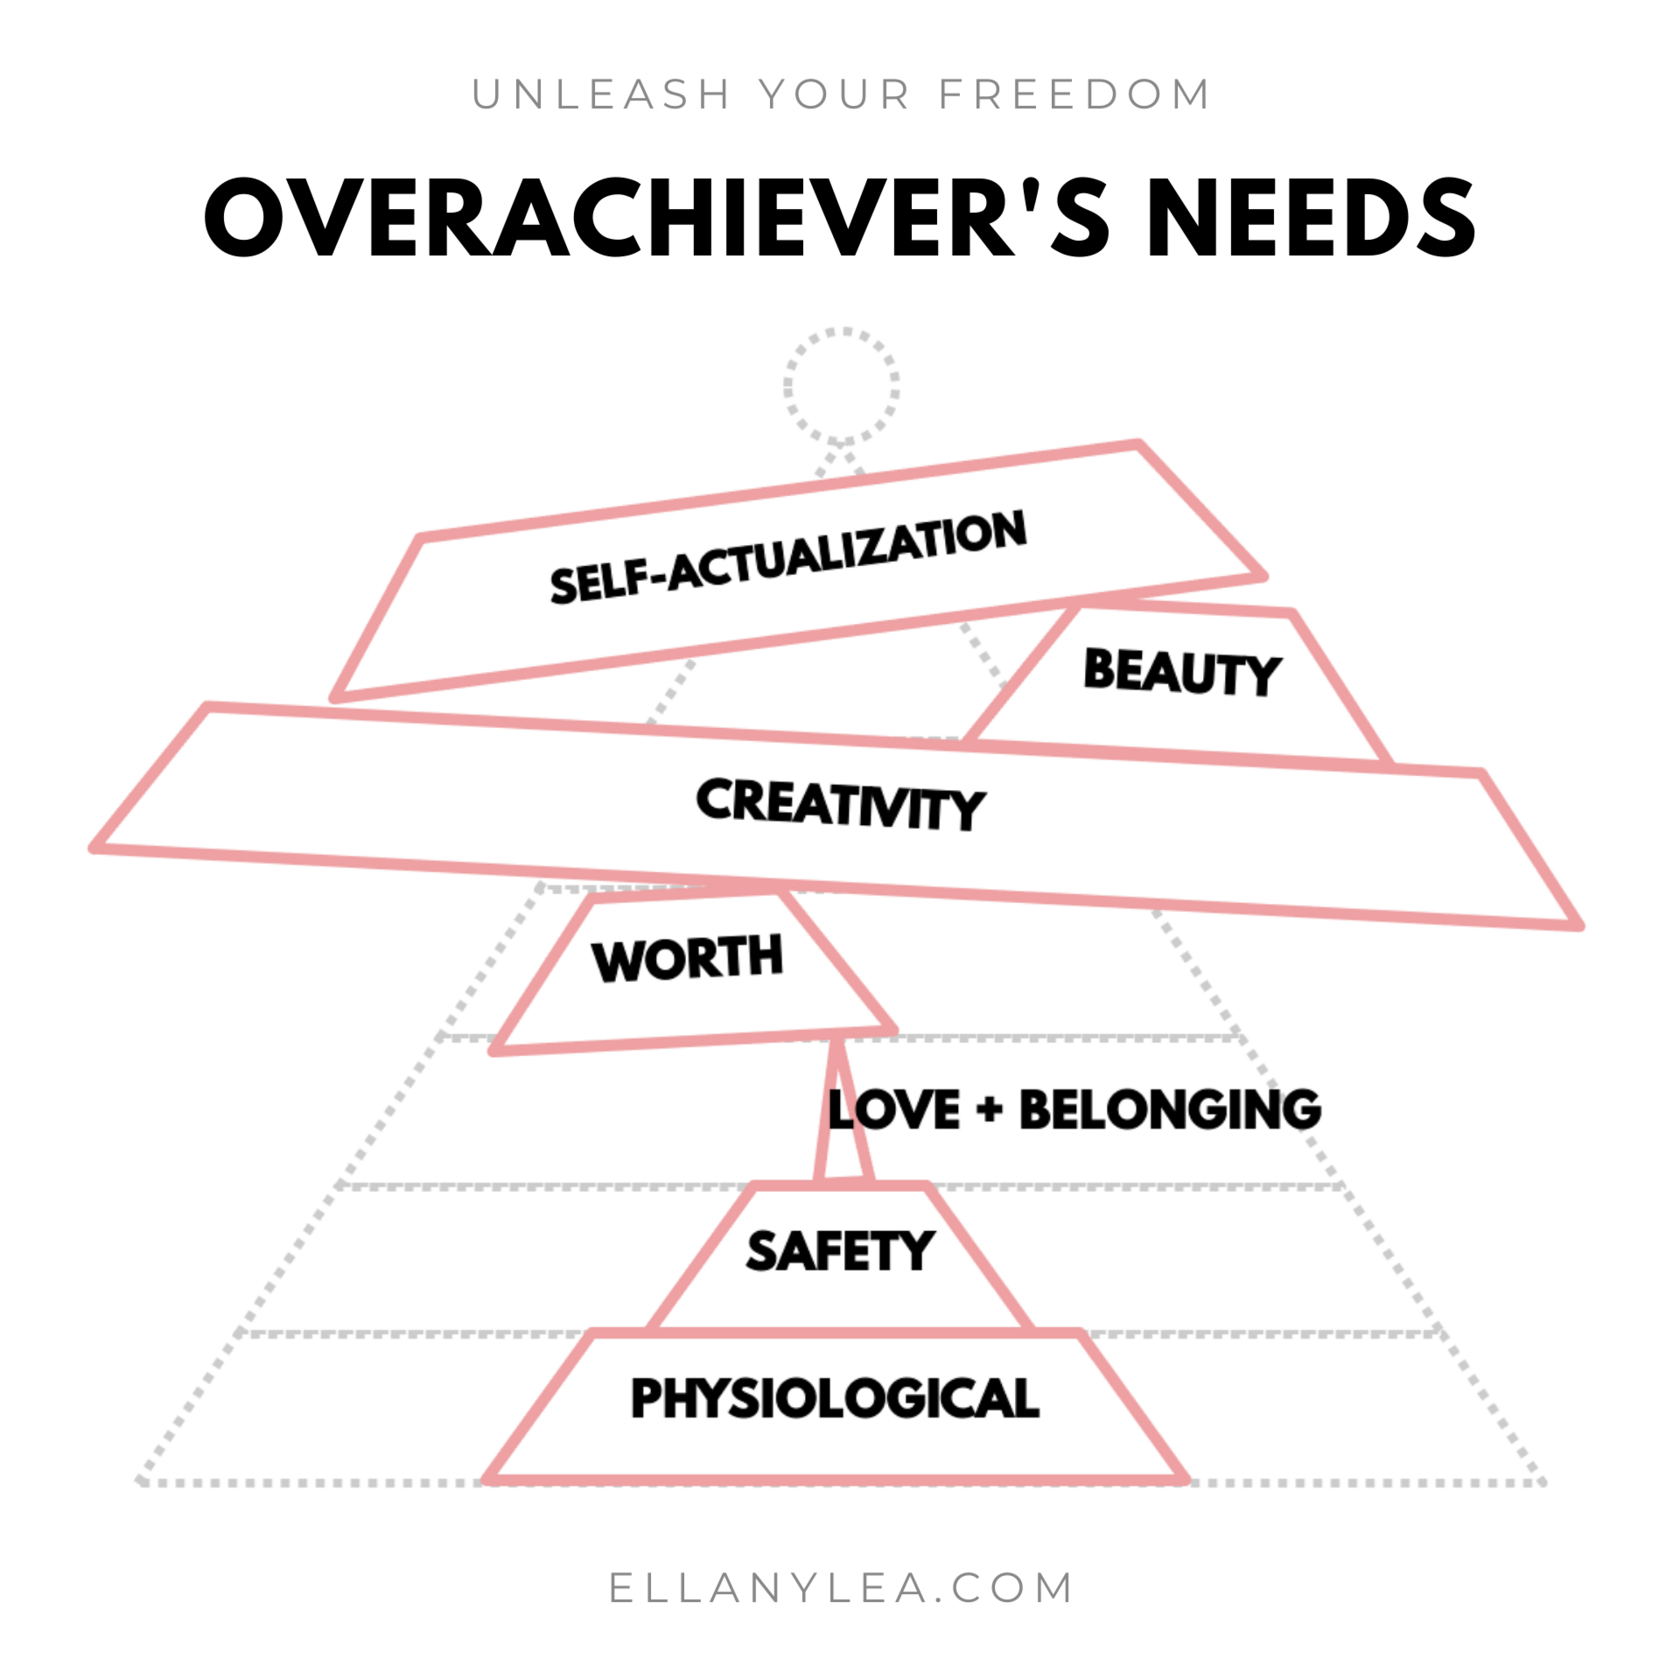 EL - Overachievers Hierarchy of Needs - Stack self-actualization